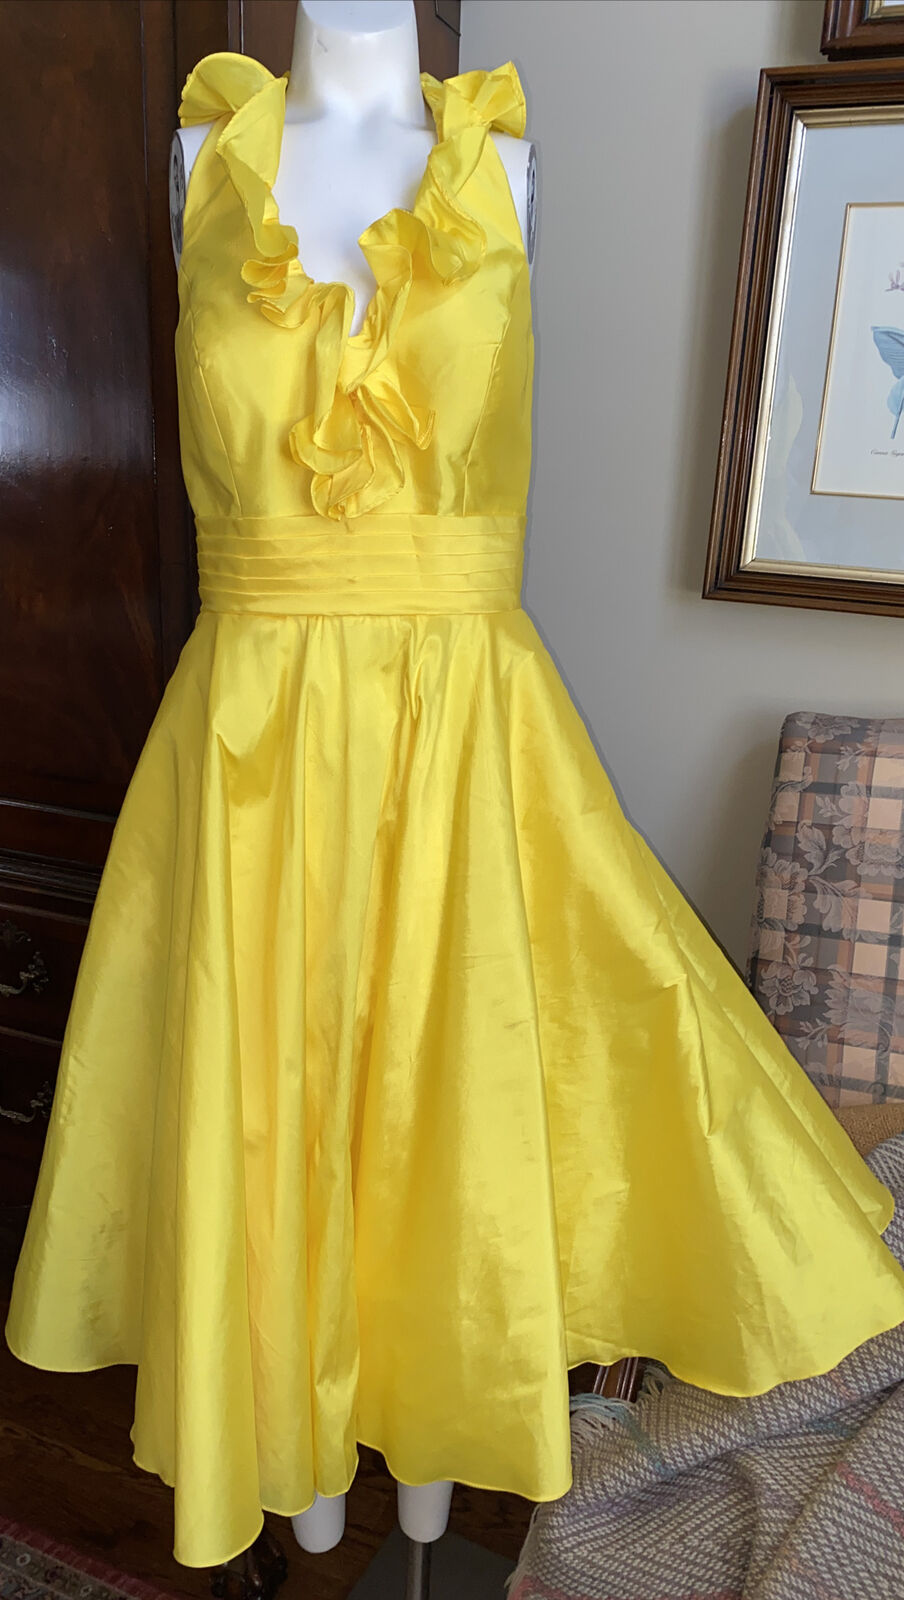 Angelina Faccenda Yellow Halter Gown Dress Party Wedding Formal Bridesmaid